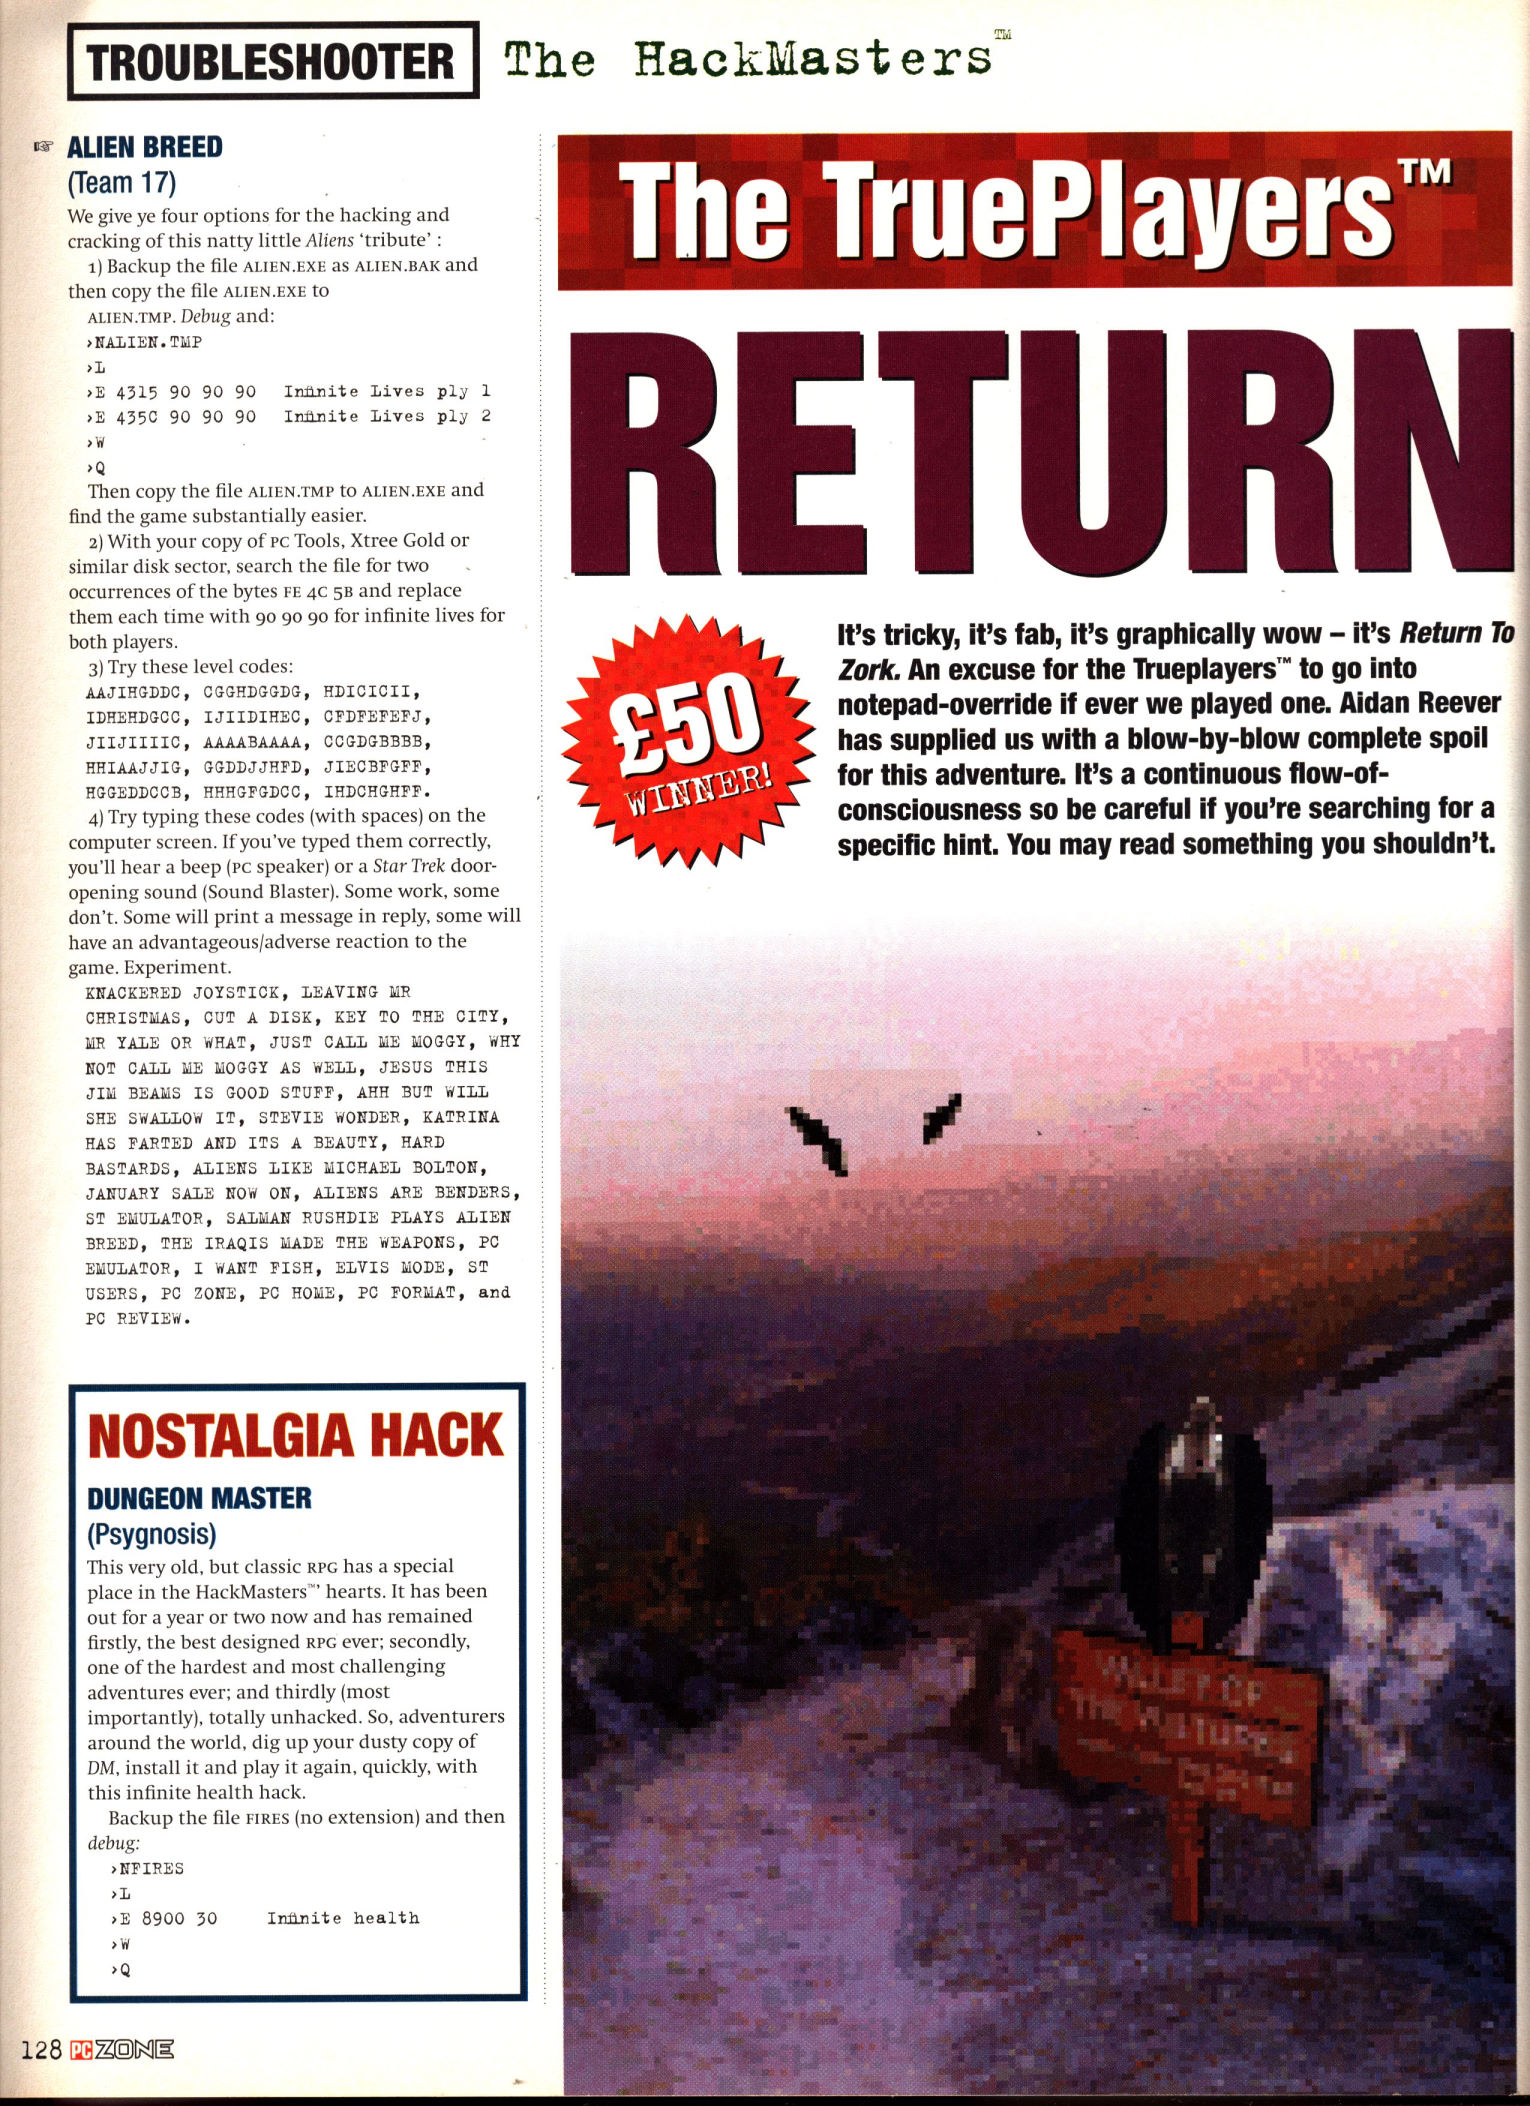 Dungeon Master for PC Cheat published in British magazine 'PC Zone', Issue #11 February 1995, Page 128